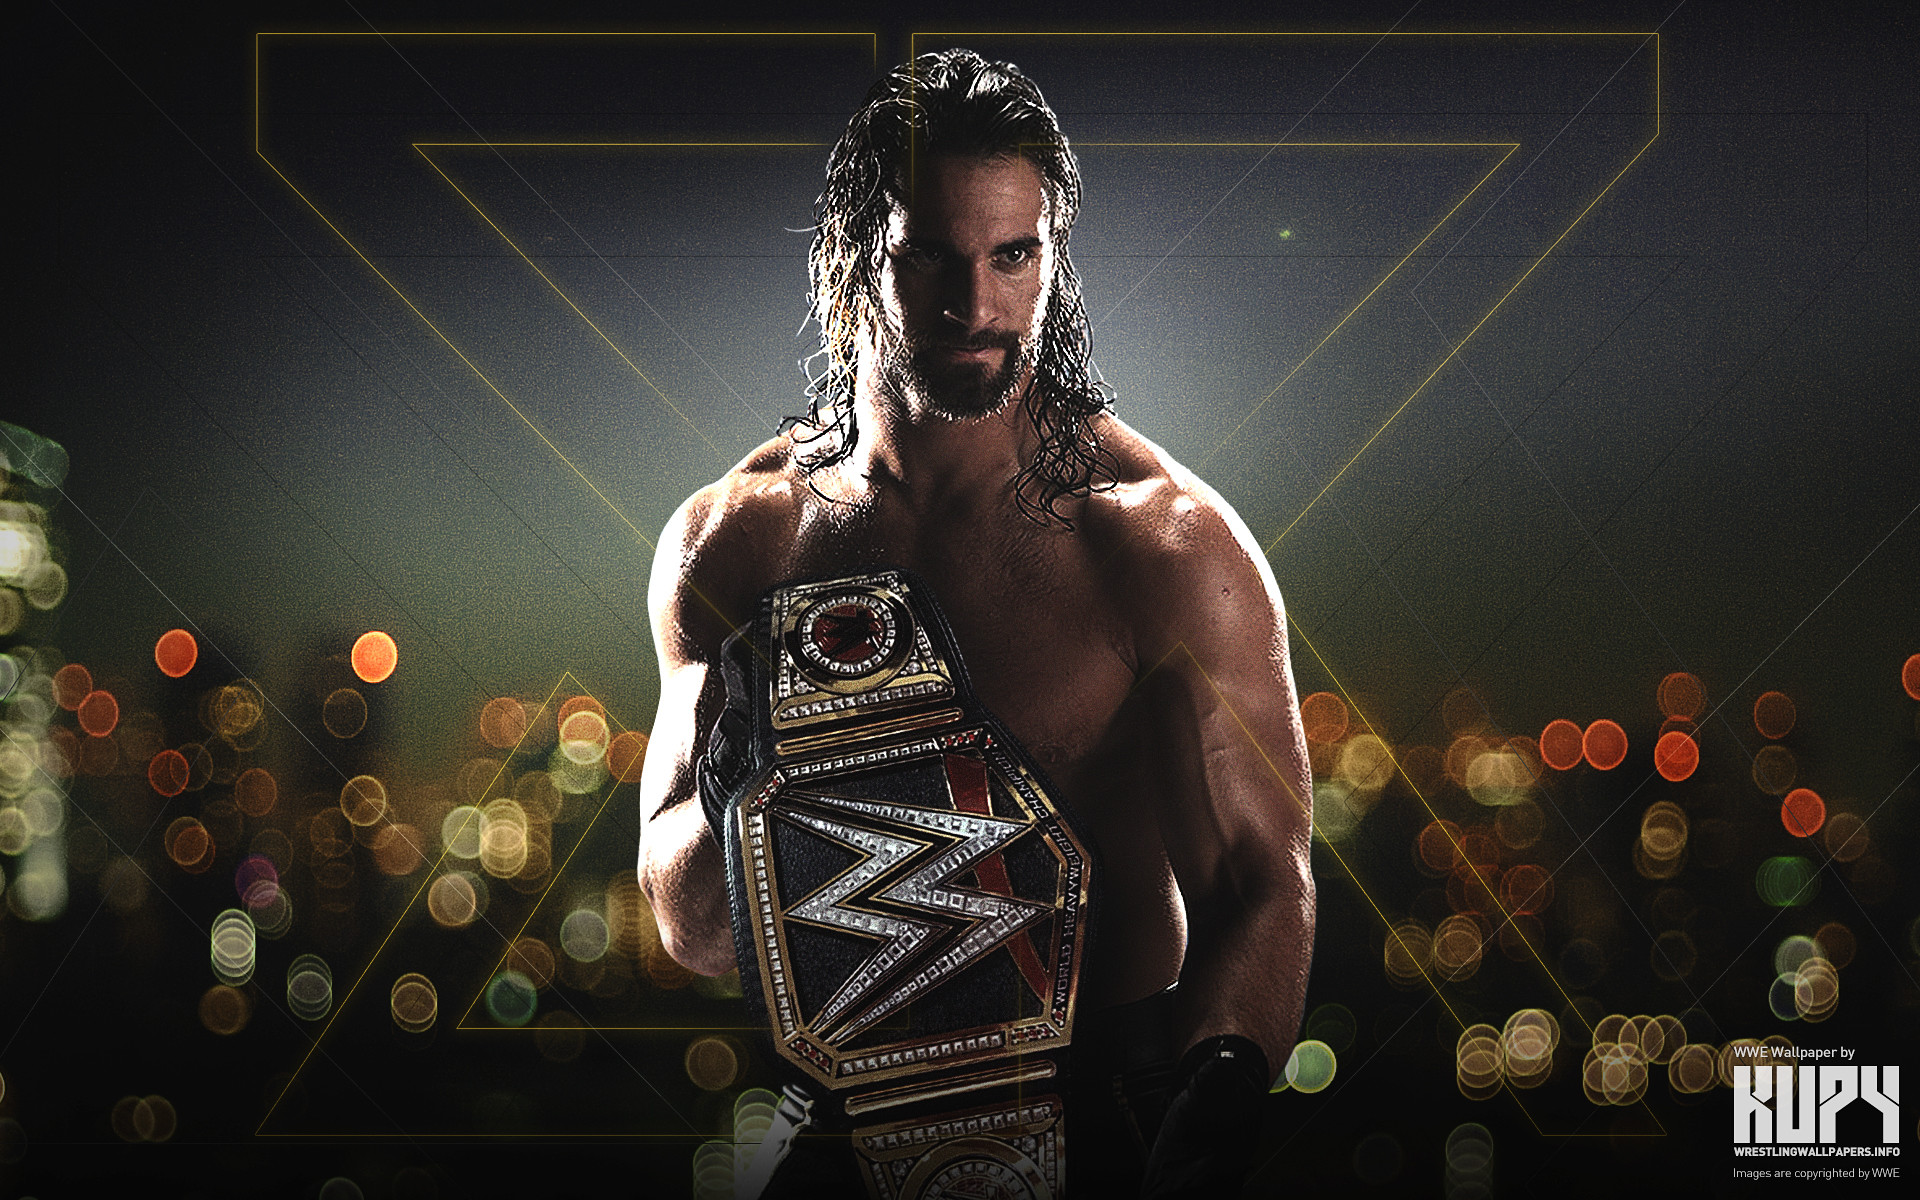 1920x1200 NEW Seth Rollins WWE World Heavyweight Champion wallpaper!